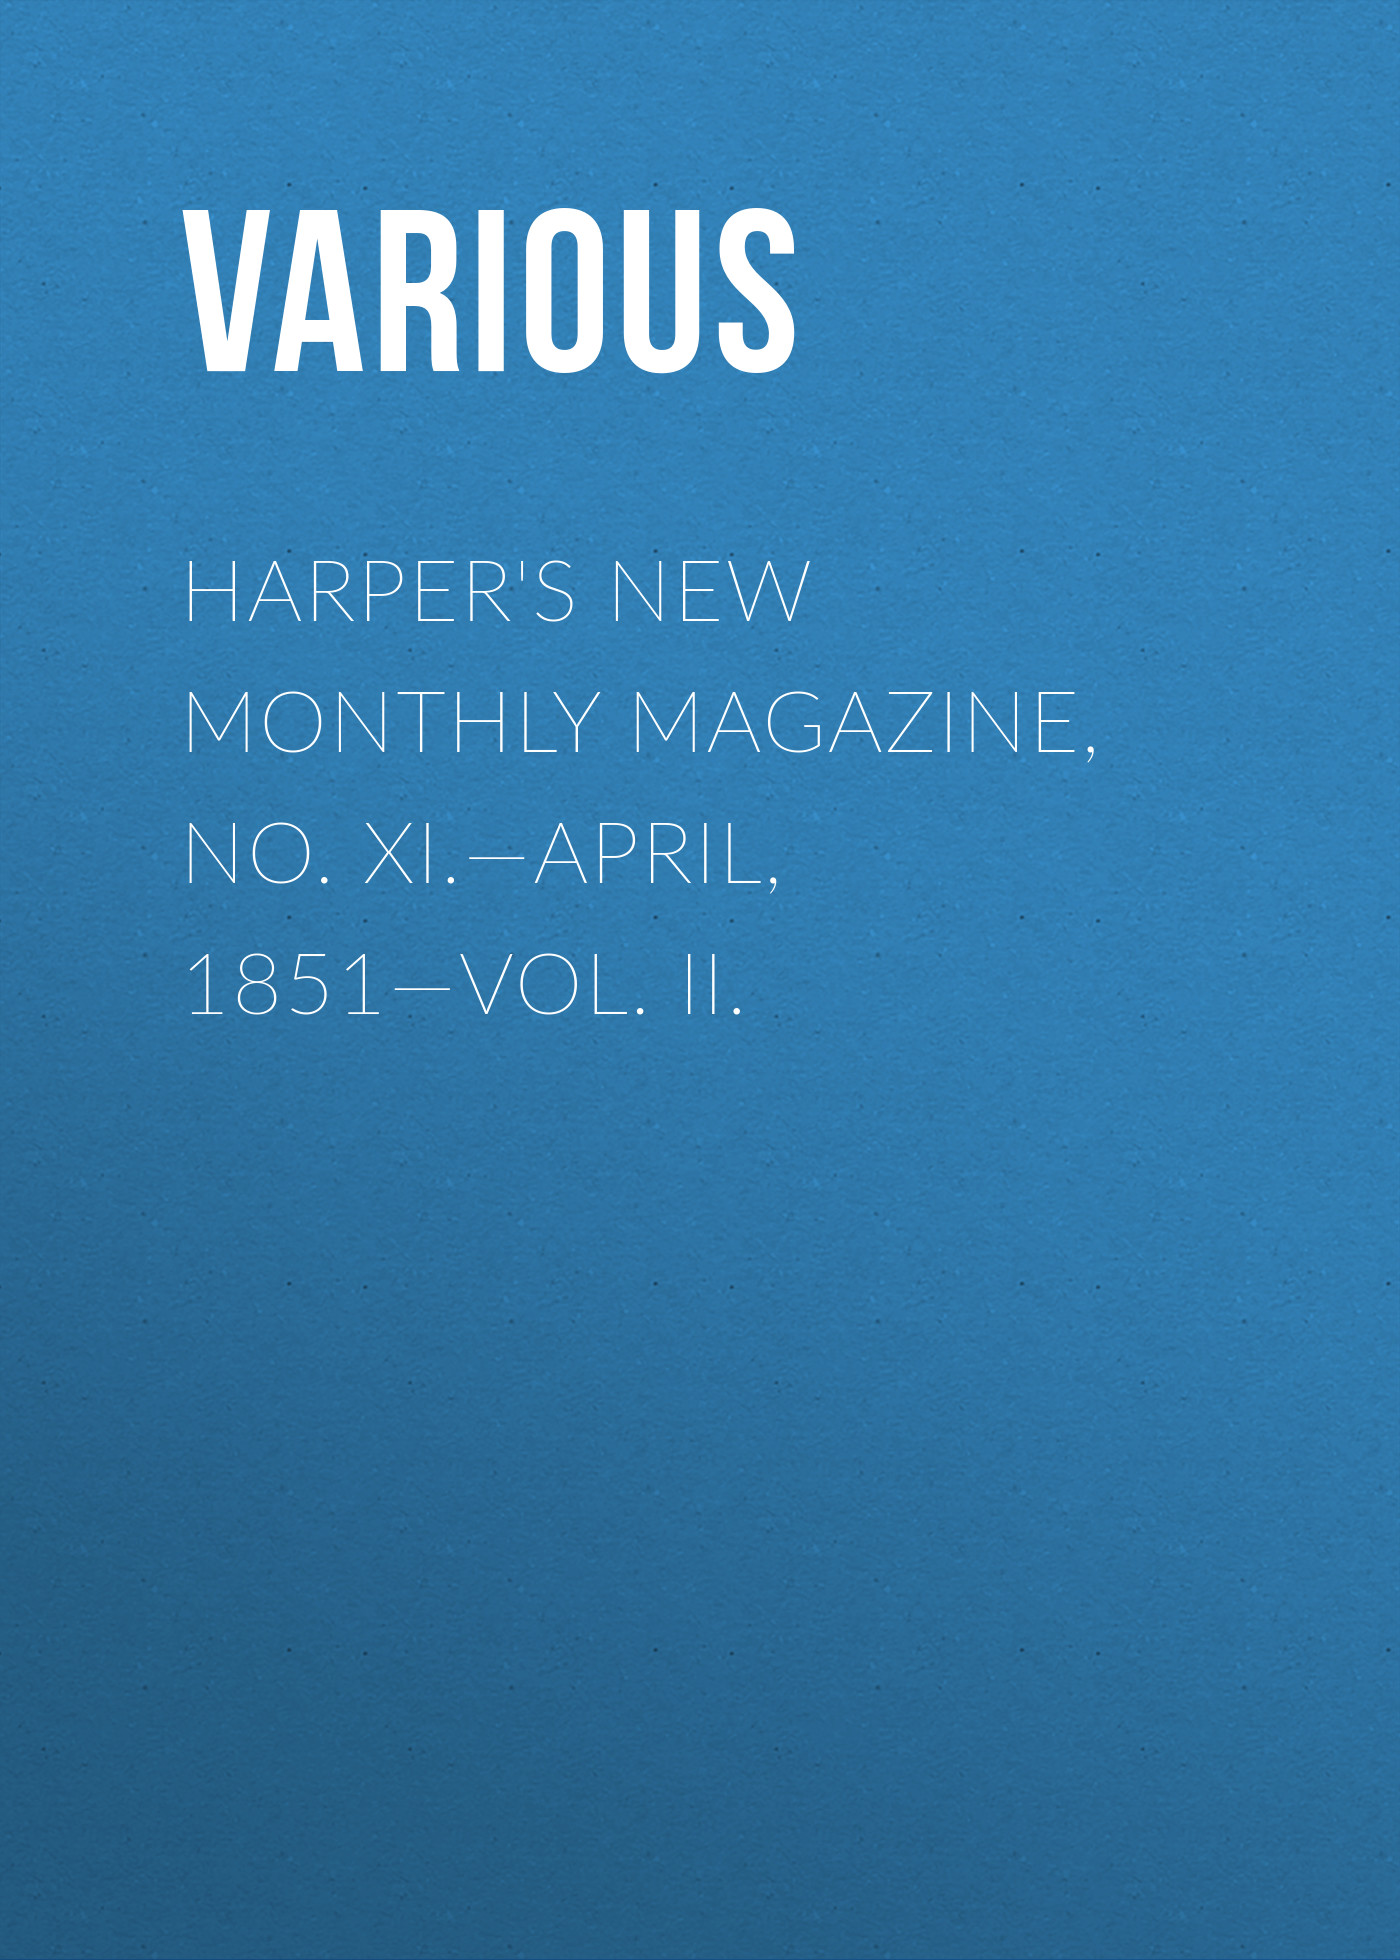 Harper's New Monthly Magazine, No. XI.—April, 1851—Vol. II.